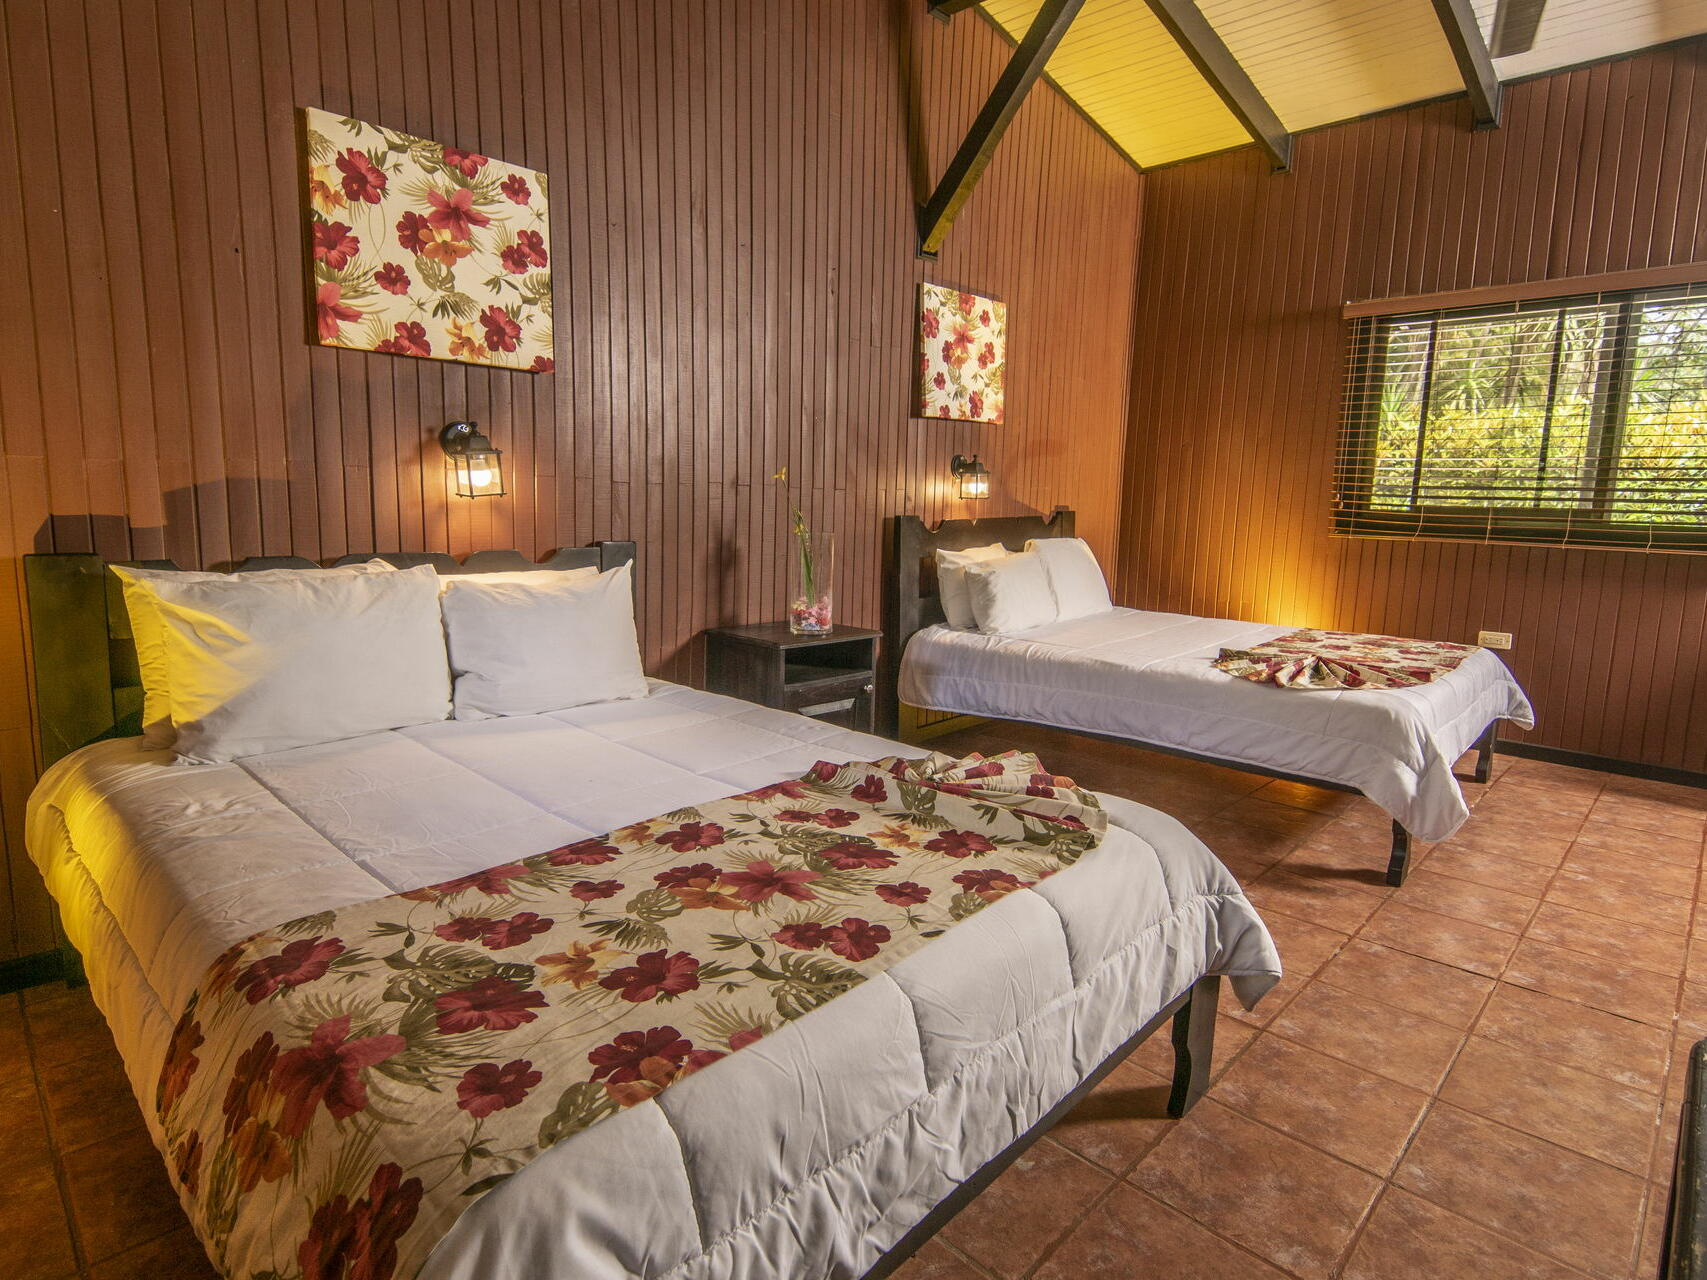 Two Beds, Wooden Wall and a Window at Buena Vista Del Rincon